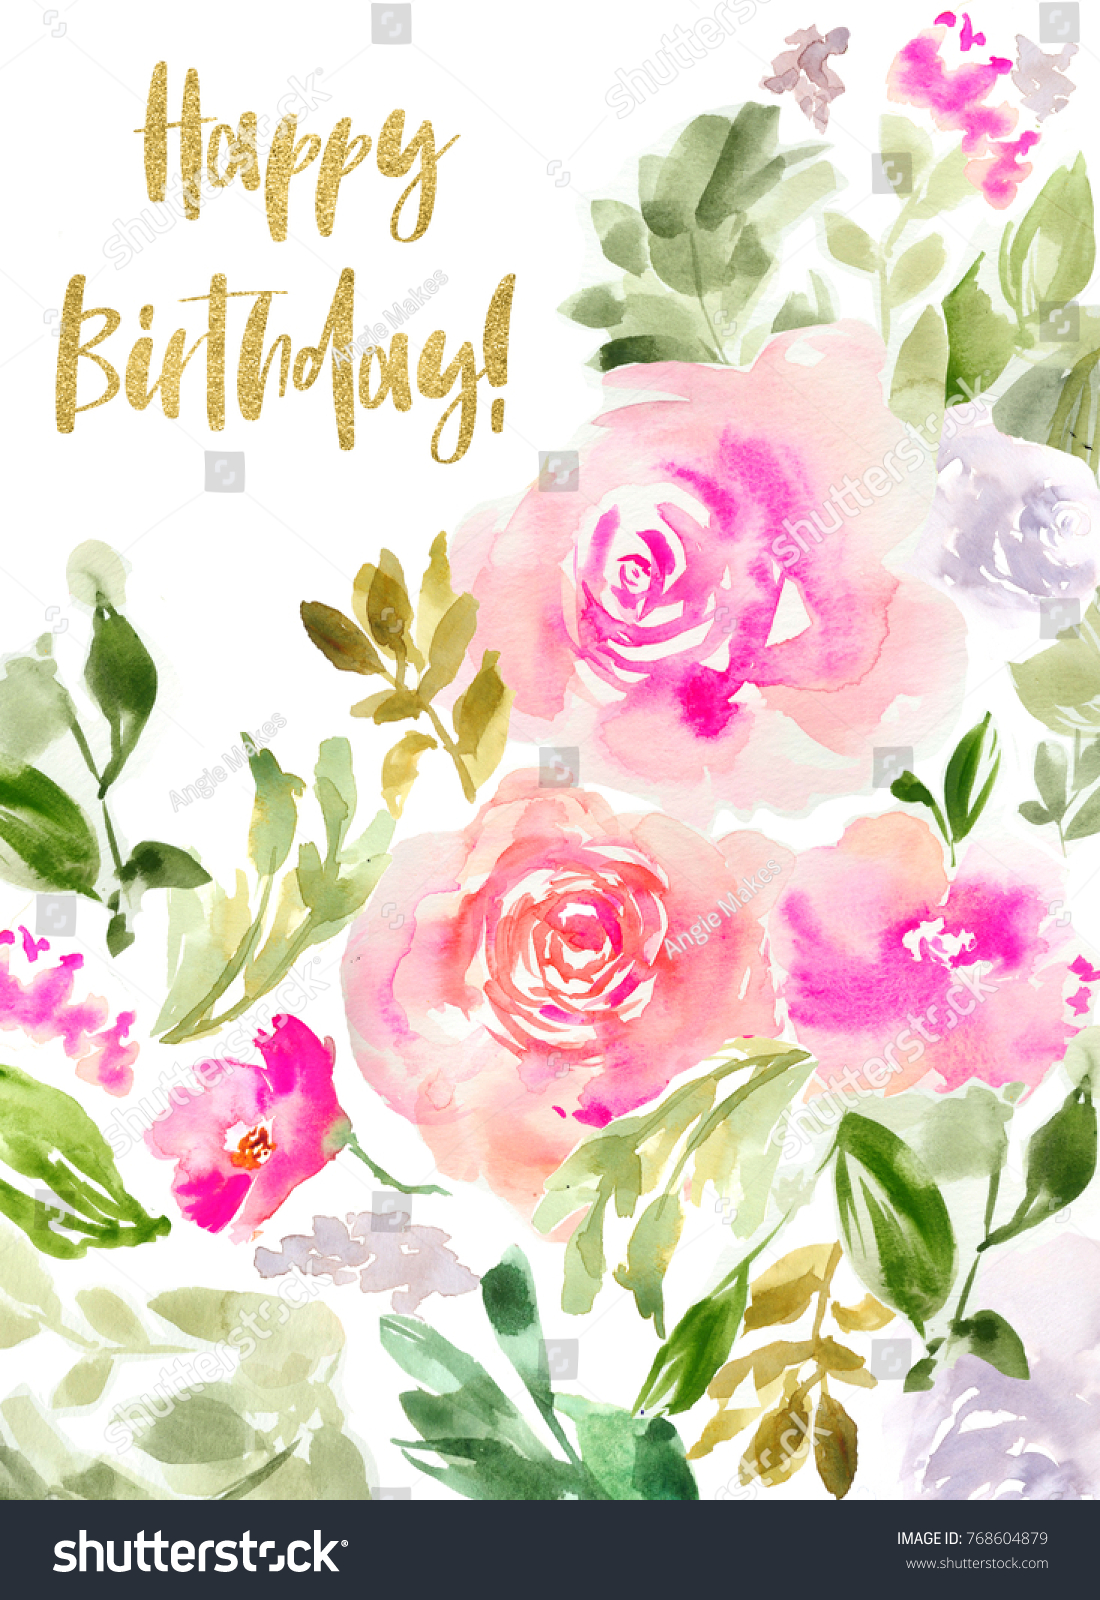 Cute printable watercolor flowers birthday card stock illustration cute printable watercolor flowers birthday card izmirmasajfo